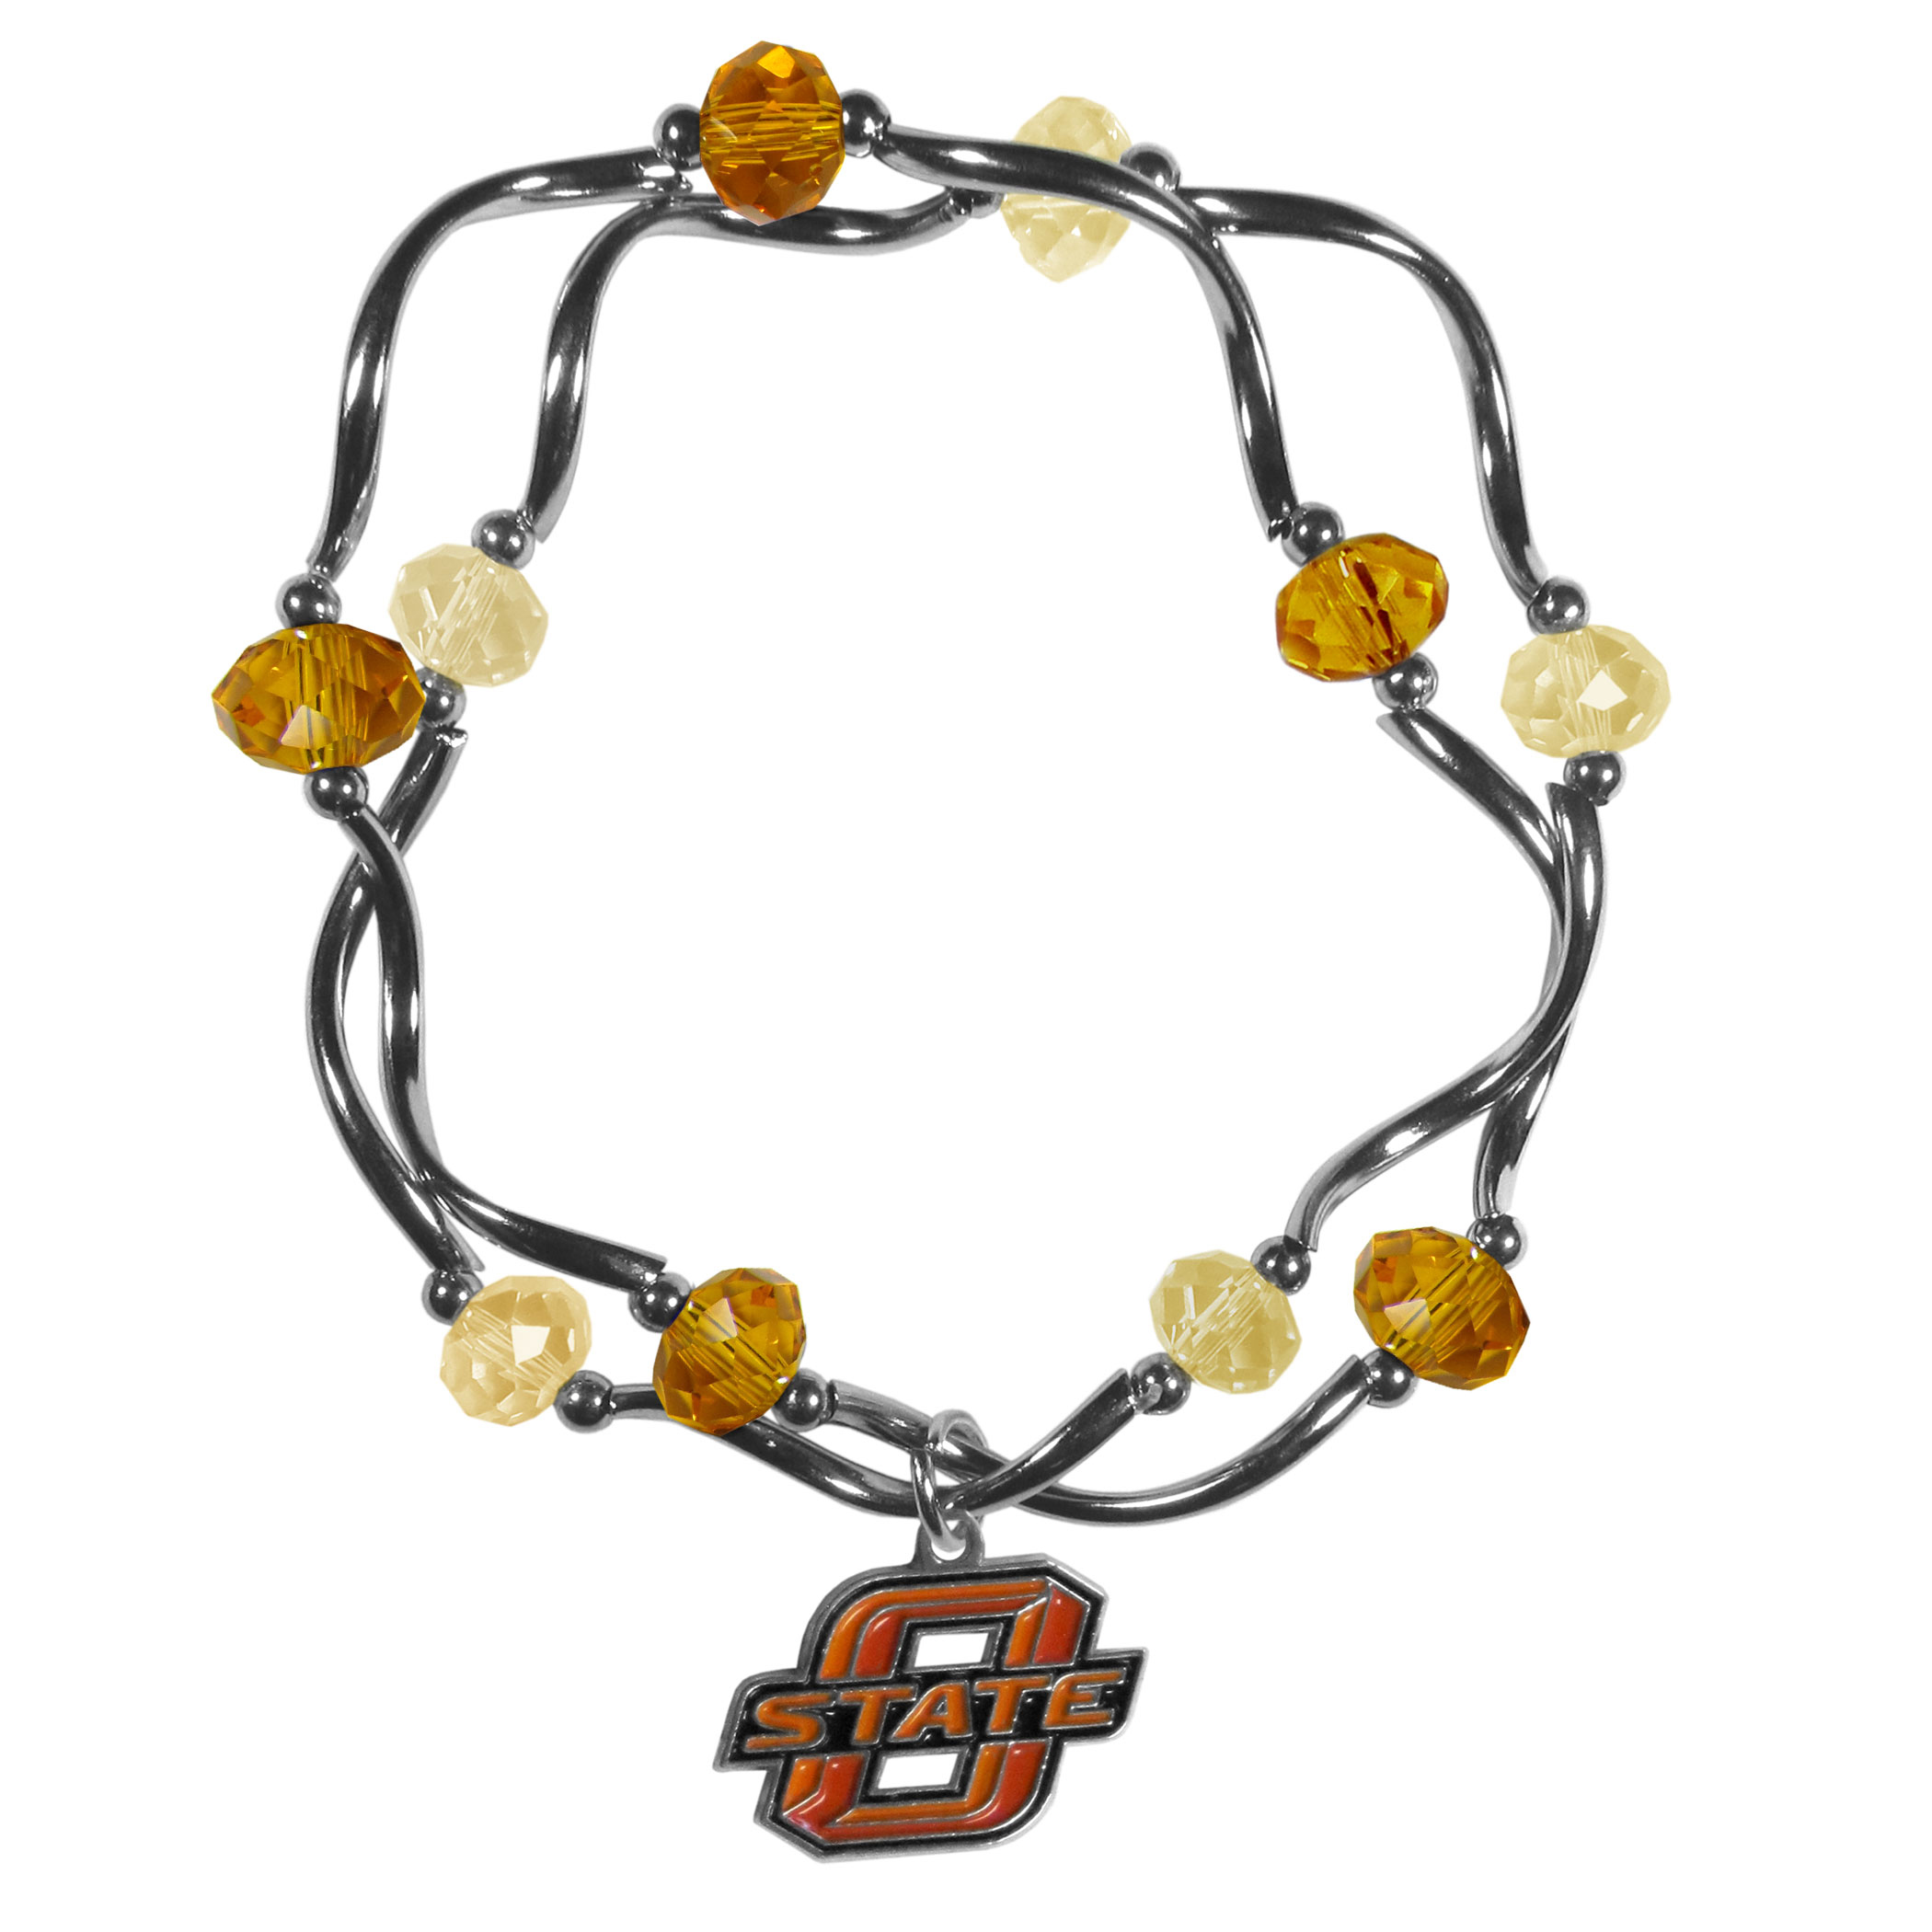 Oklahoma St. Cowboys Crystal Bead Bracelet - This delicate bead bracelet has eye-catching team colored beads that are strung on 2 stretch cords that provide a comfortable and easy fit. The crystals are separated by beautiful helix beads in high polish chrome for a truly designer inspired look. The 2 strands of beads intertwine for a fun and stylish bracelet. This chic accessory is finished off with a Oklahoma St. Cowboys team charm that has expertly carved detail and an enameled color finish. A contemporary look to thrill any female sports fan. Whether this a gift for yourself or someone special you cannot miss with this trend-setting fashion bracelet.